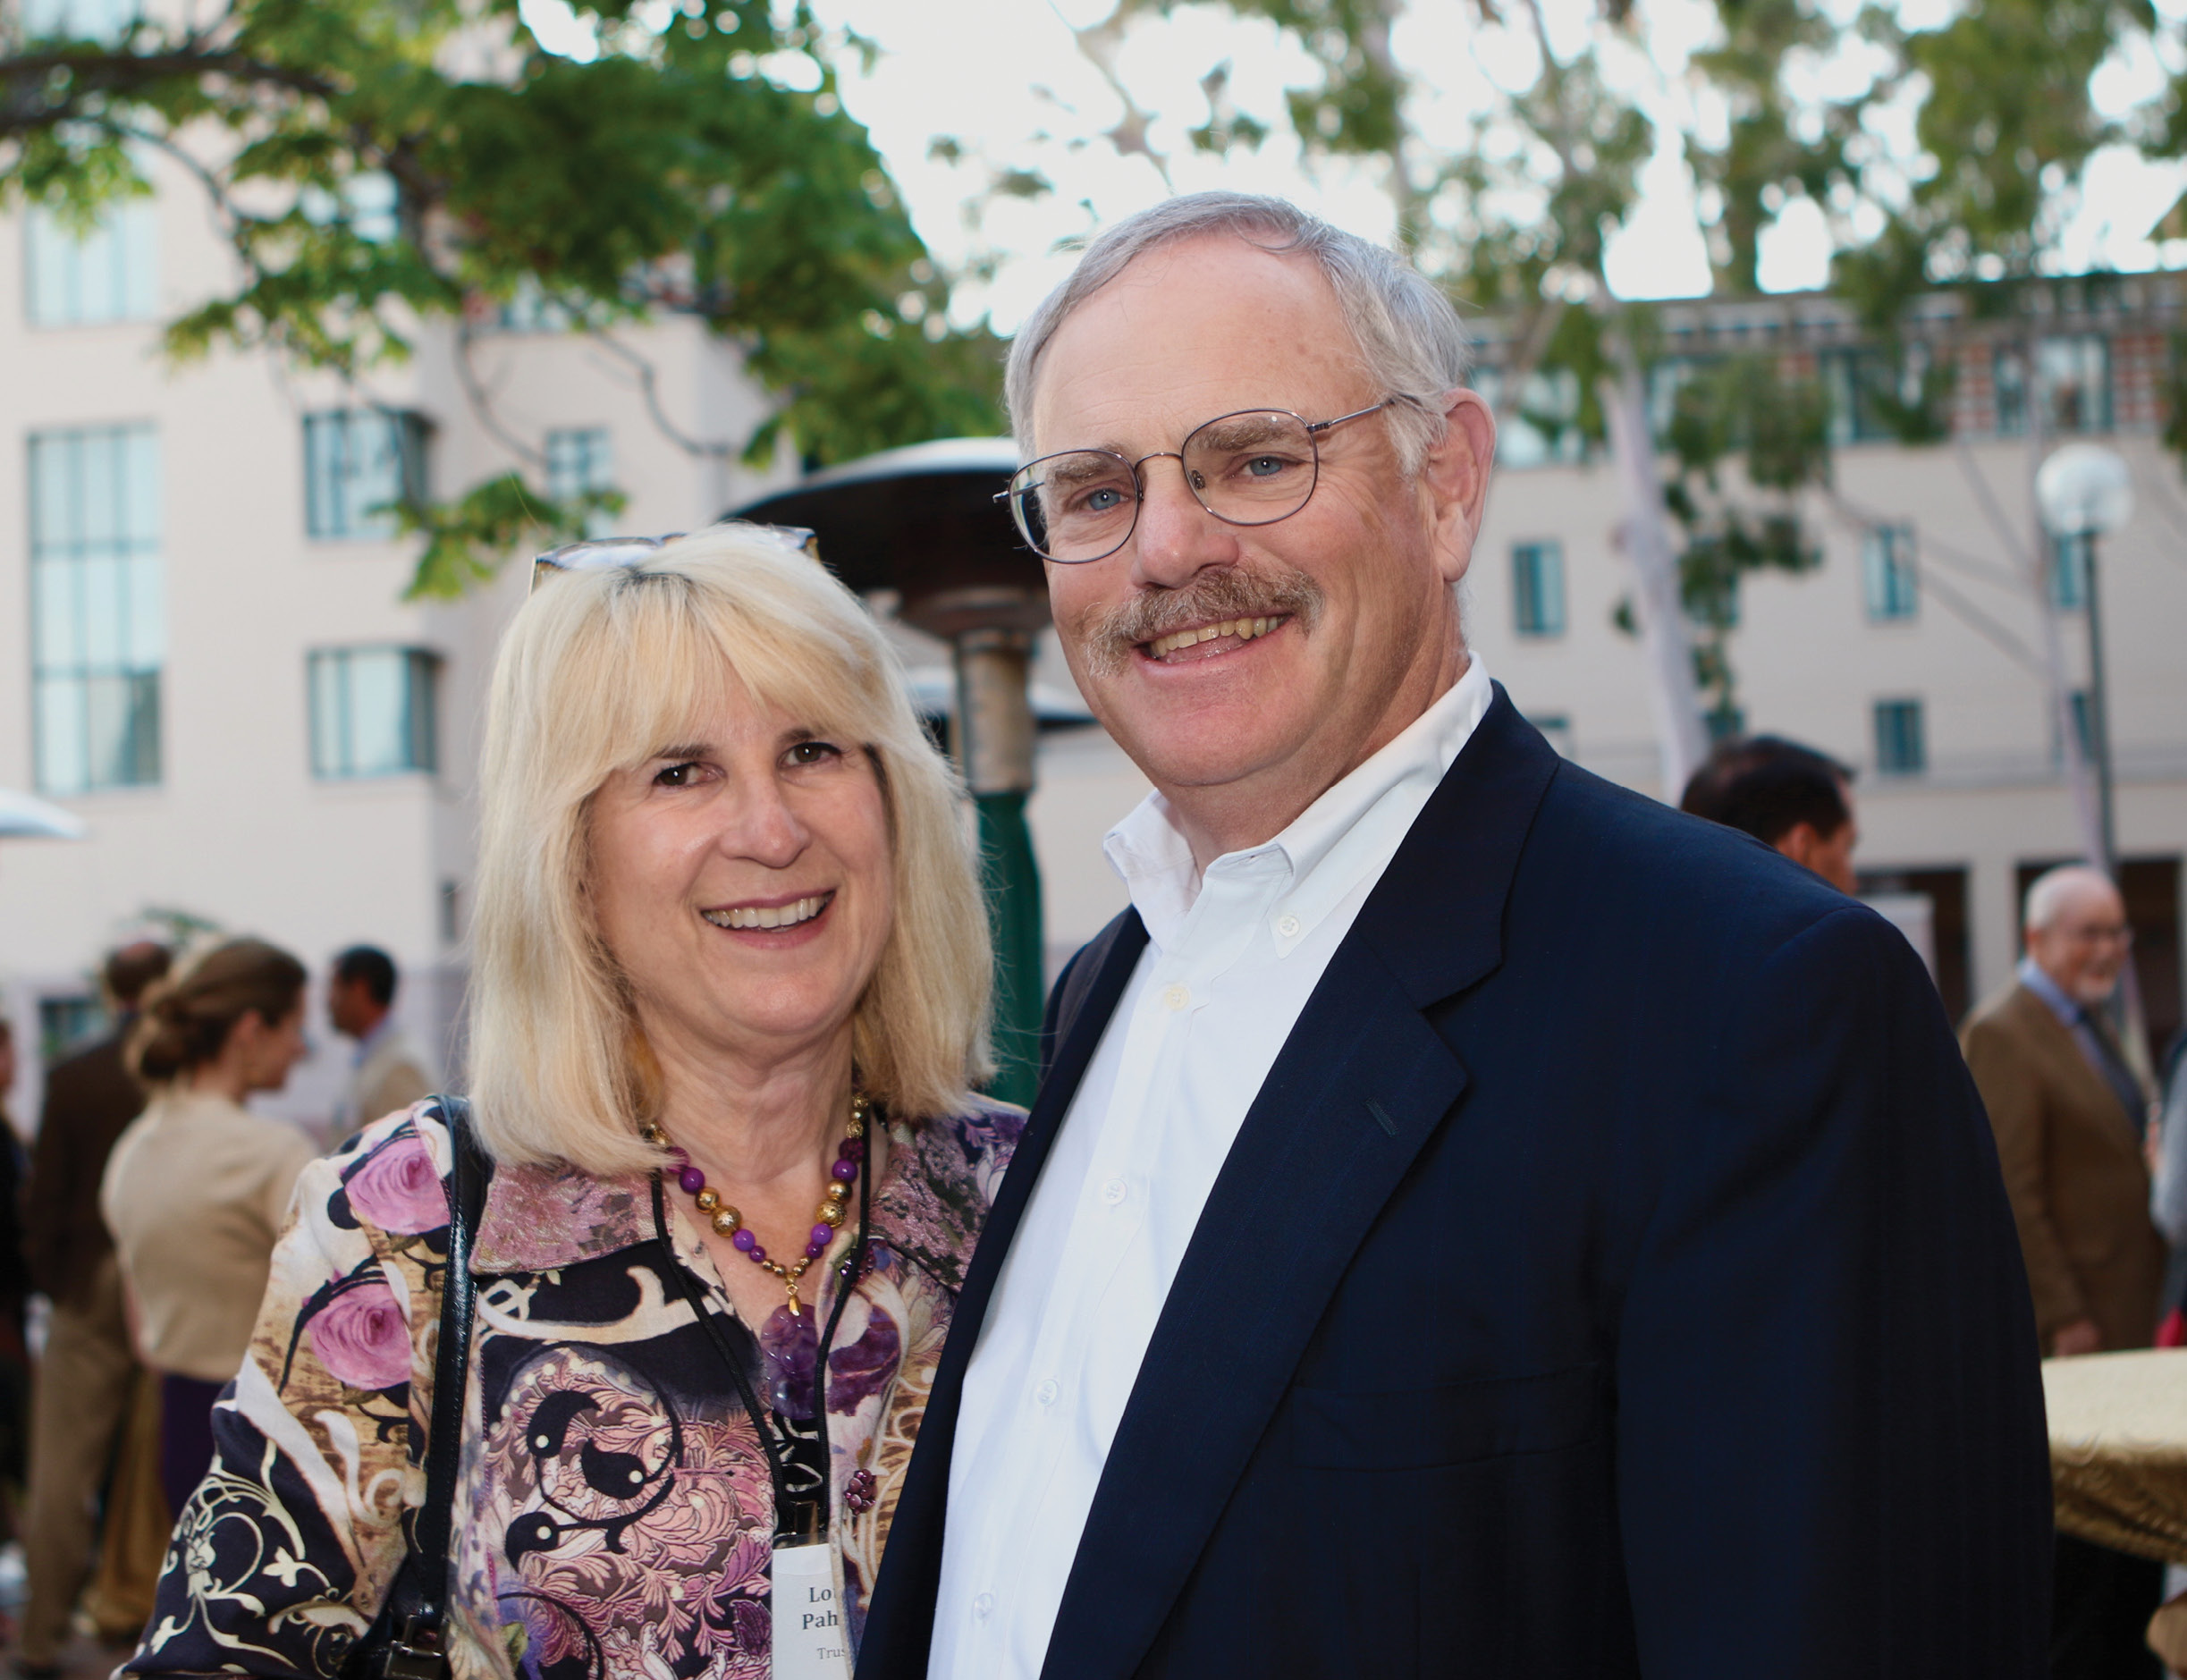 Louise '77 and Stephen D. '77 Pahl